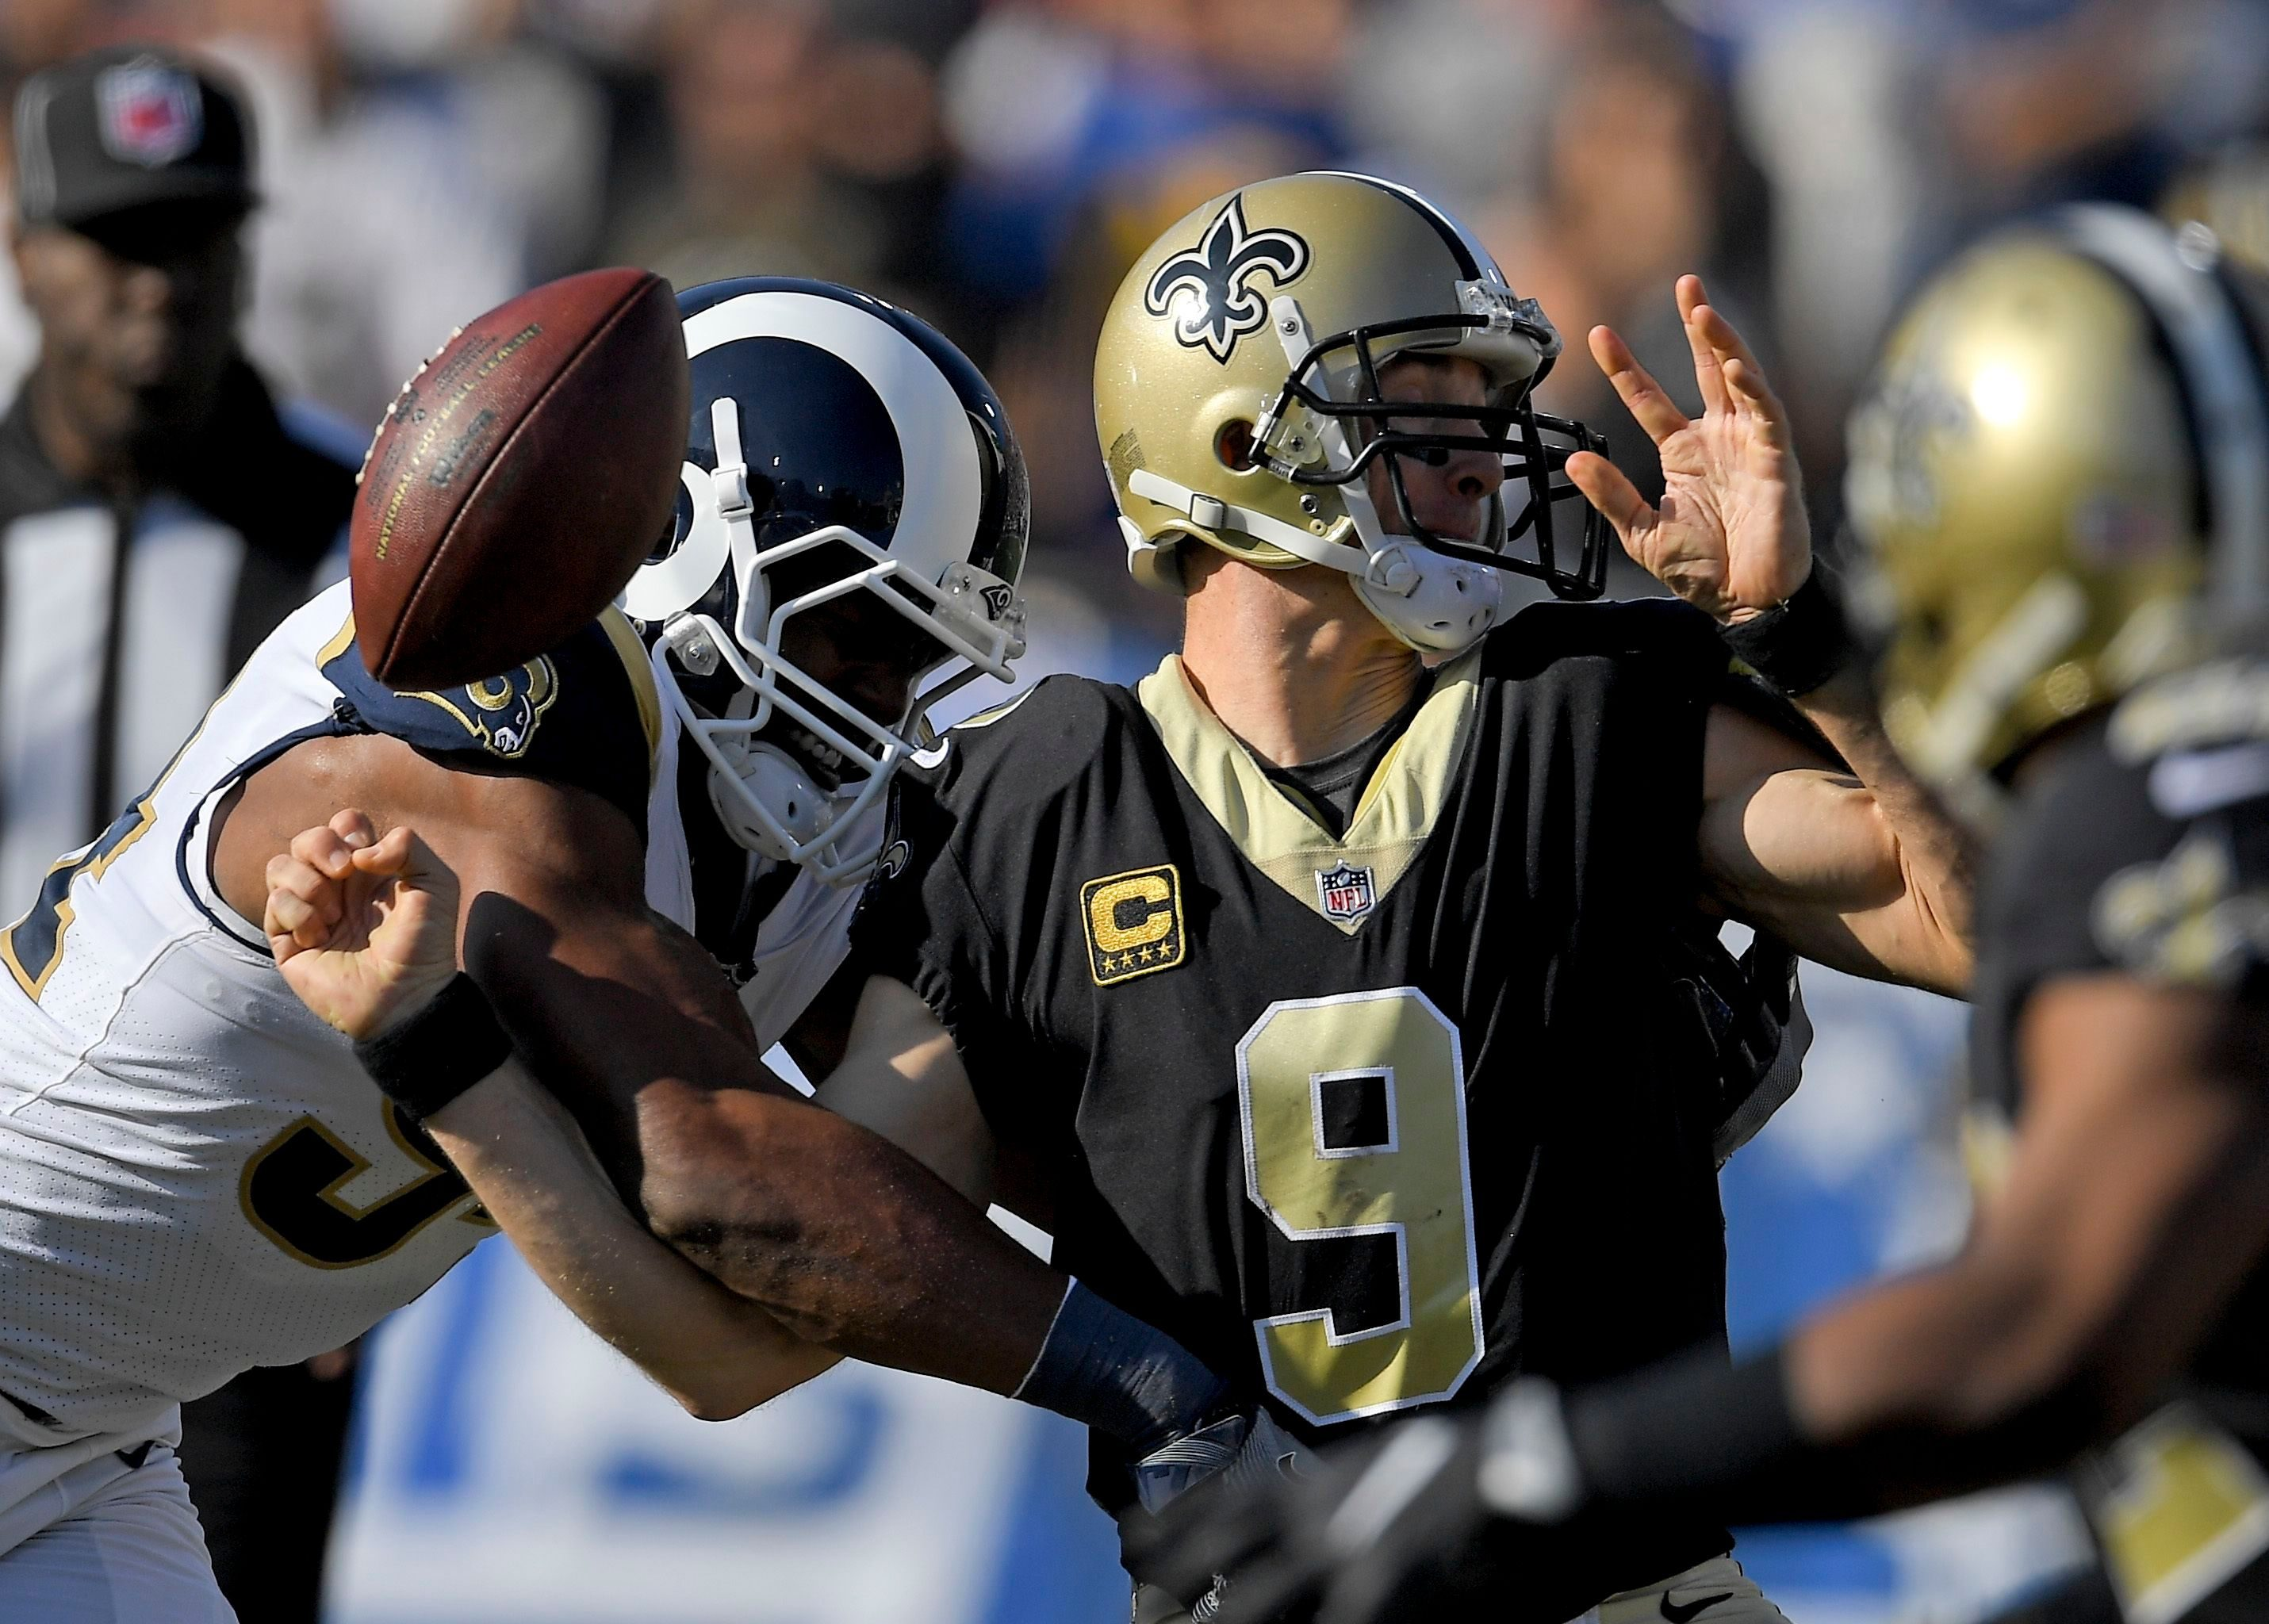 Mandatory Credit: Photo by AP/Shutterstock (9240887g) Los Angeles Rams defensive end Aaron Donald, left, forces a fumble by New Orleans Saints quarterback Drew Brees during the first half of an NFL football game, in Los Angeles. The Saints recovered the ball on the play Saints Rams Football, Los Angeles, USA - 26 Nov 2017